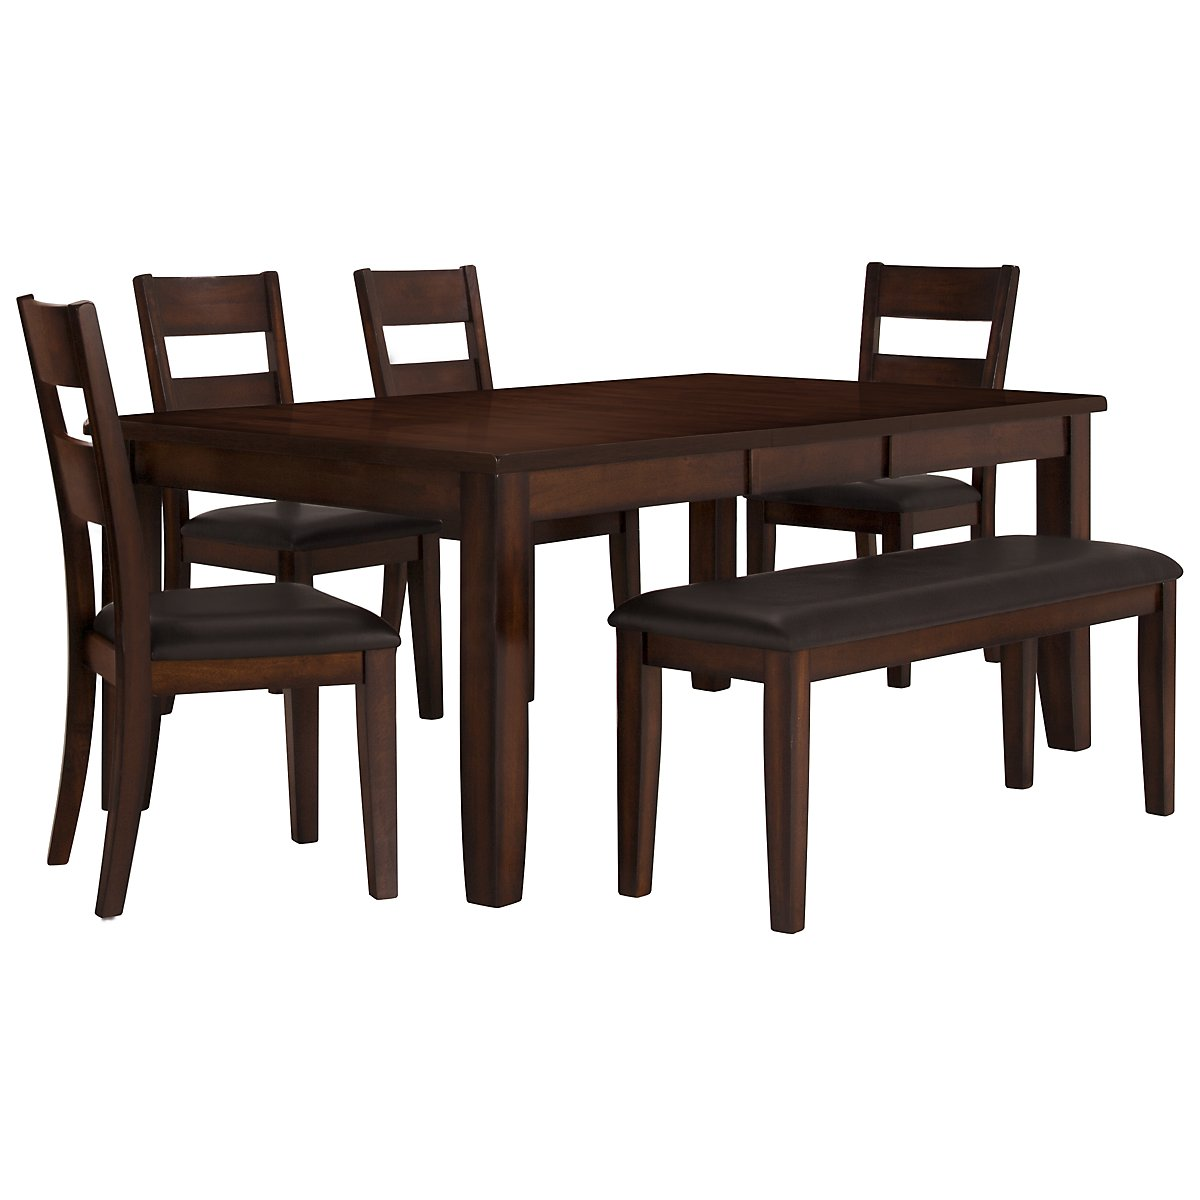 Top City Furniture: Mango2 Dark Tone Rectangular Table, 4 Chairs & Bench GH78